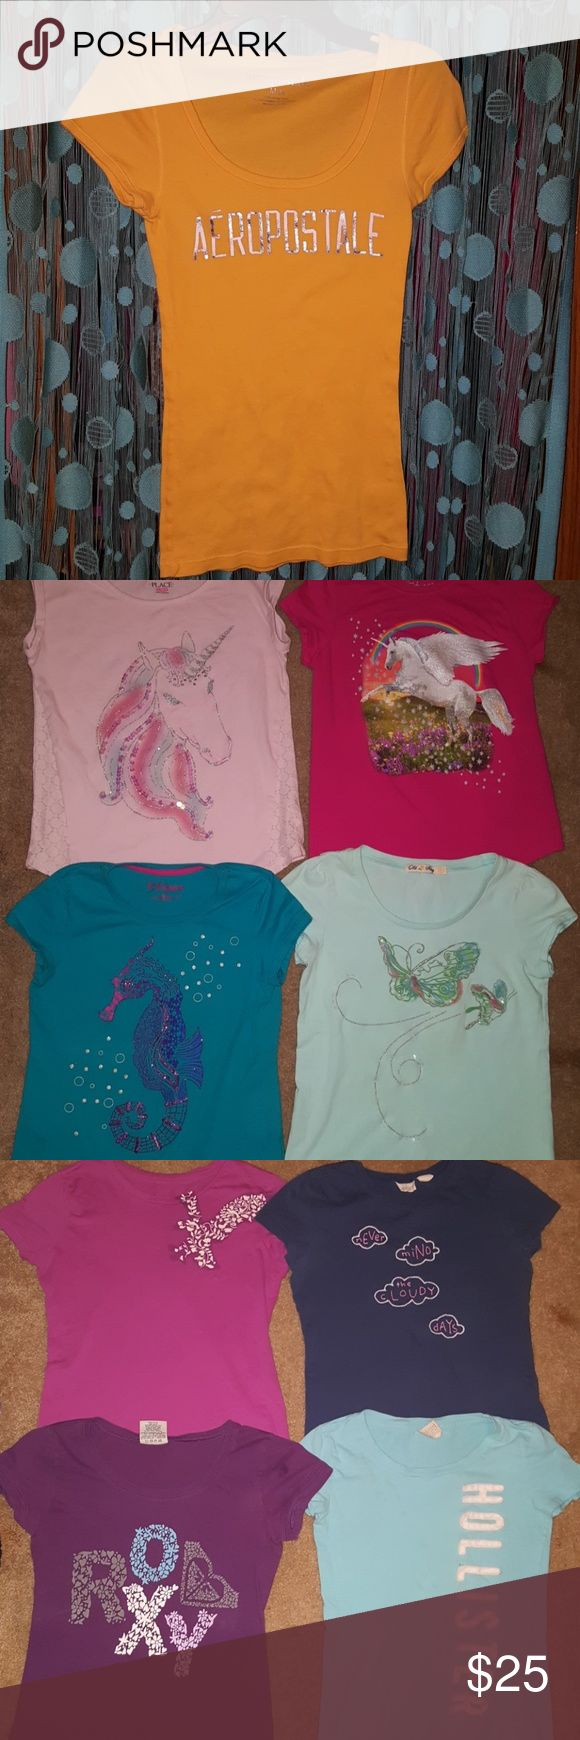 14pc Shirt Lot Hollister, Aeropostale, DKNY & More 14 pc Lot of Girls Shirts Sale is for all 14 DKNY, Mudd, American Eagle, Hollister, Aeropostale,  Abercrombie and Fitch,  Roxy, Old Navy & A Children's Place.  Sizes are a girls Medium or Large or Juniors Sm that fit small like a girls Large. Various Shirts & Tops